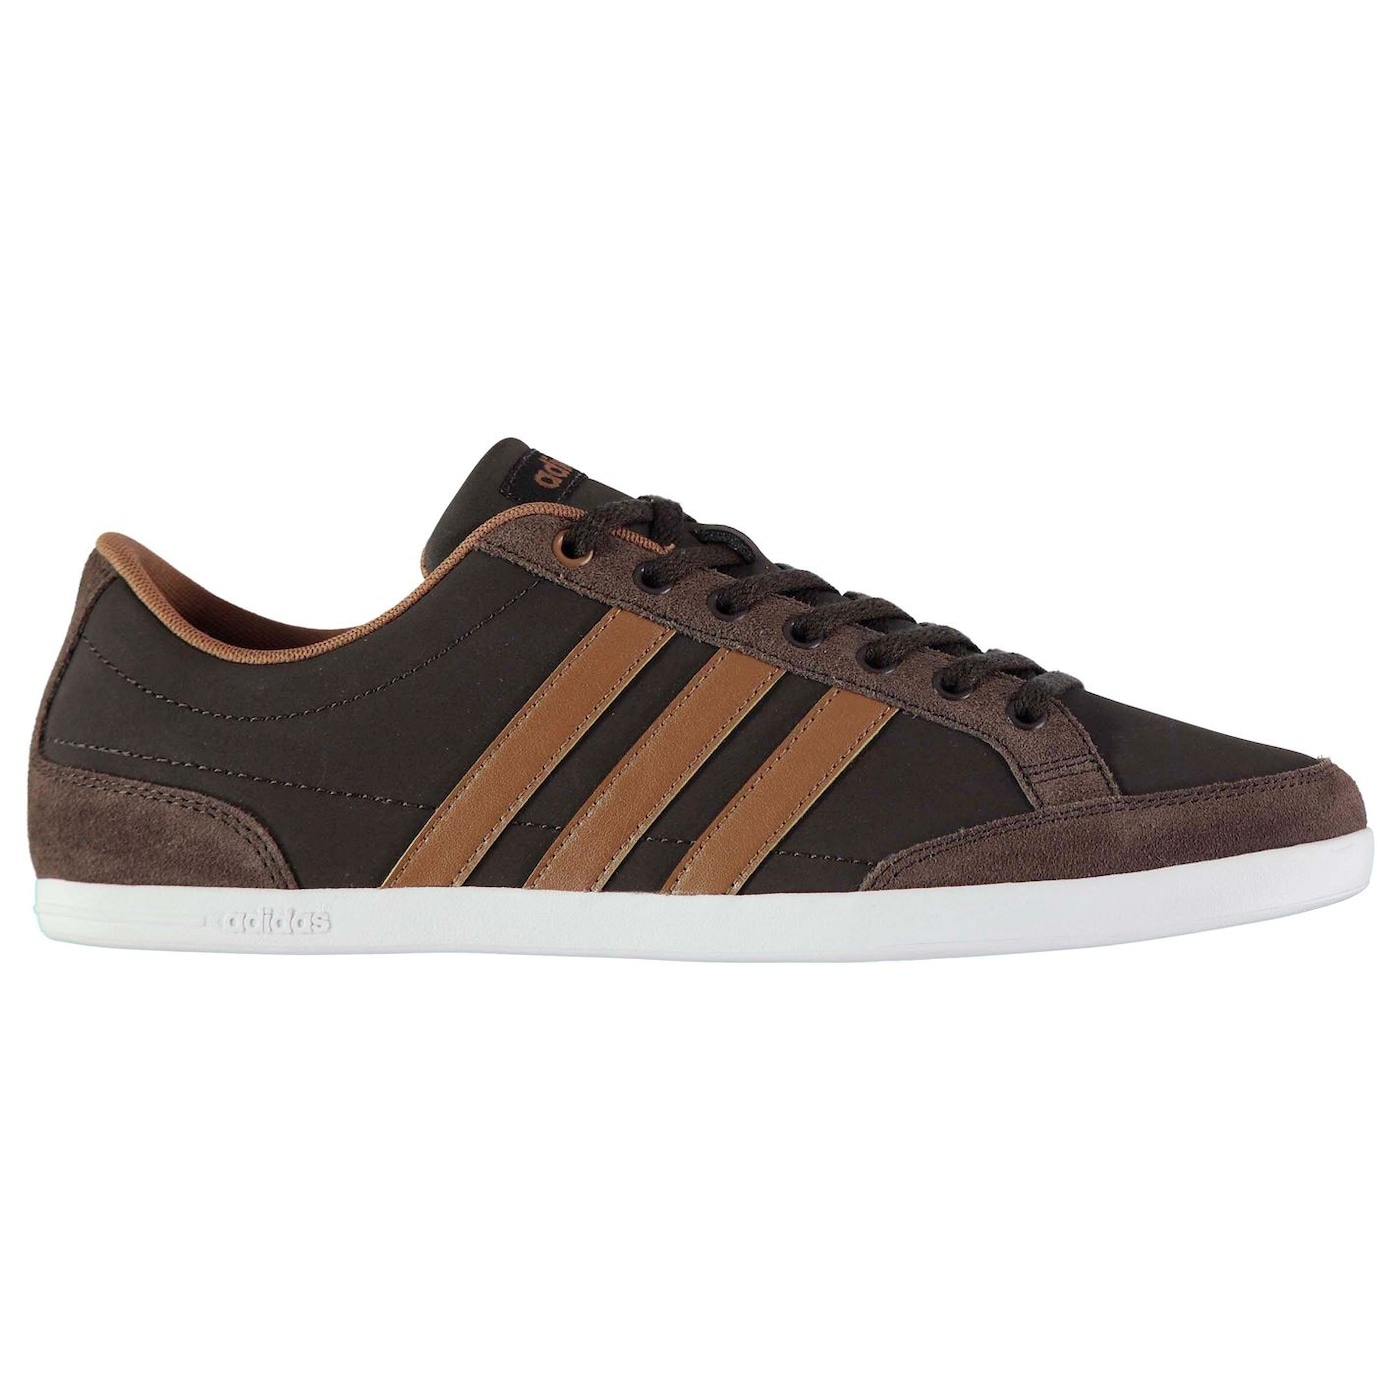 boty adidas Caflaire Nbk Sn74